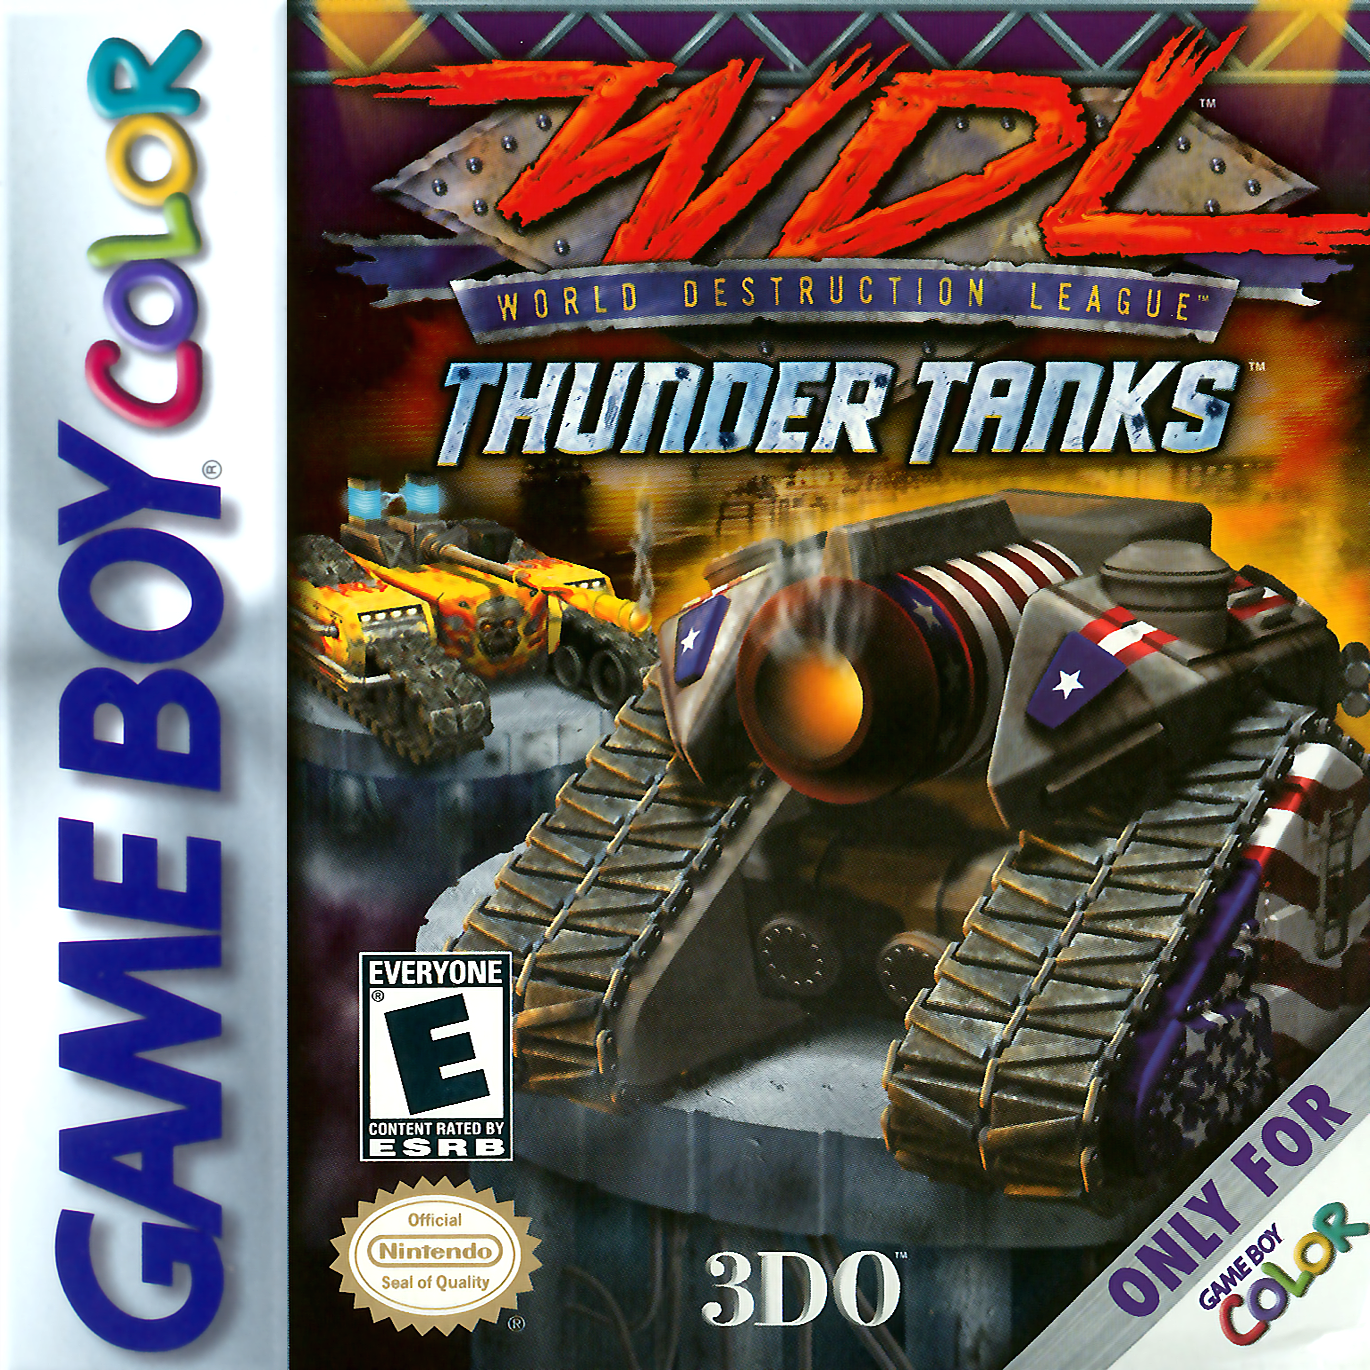 Game boy color online games - Play World Destruction League Thunder Tanks Nintendo Game Boy Color Online